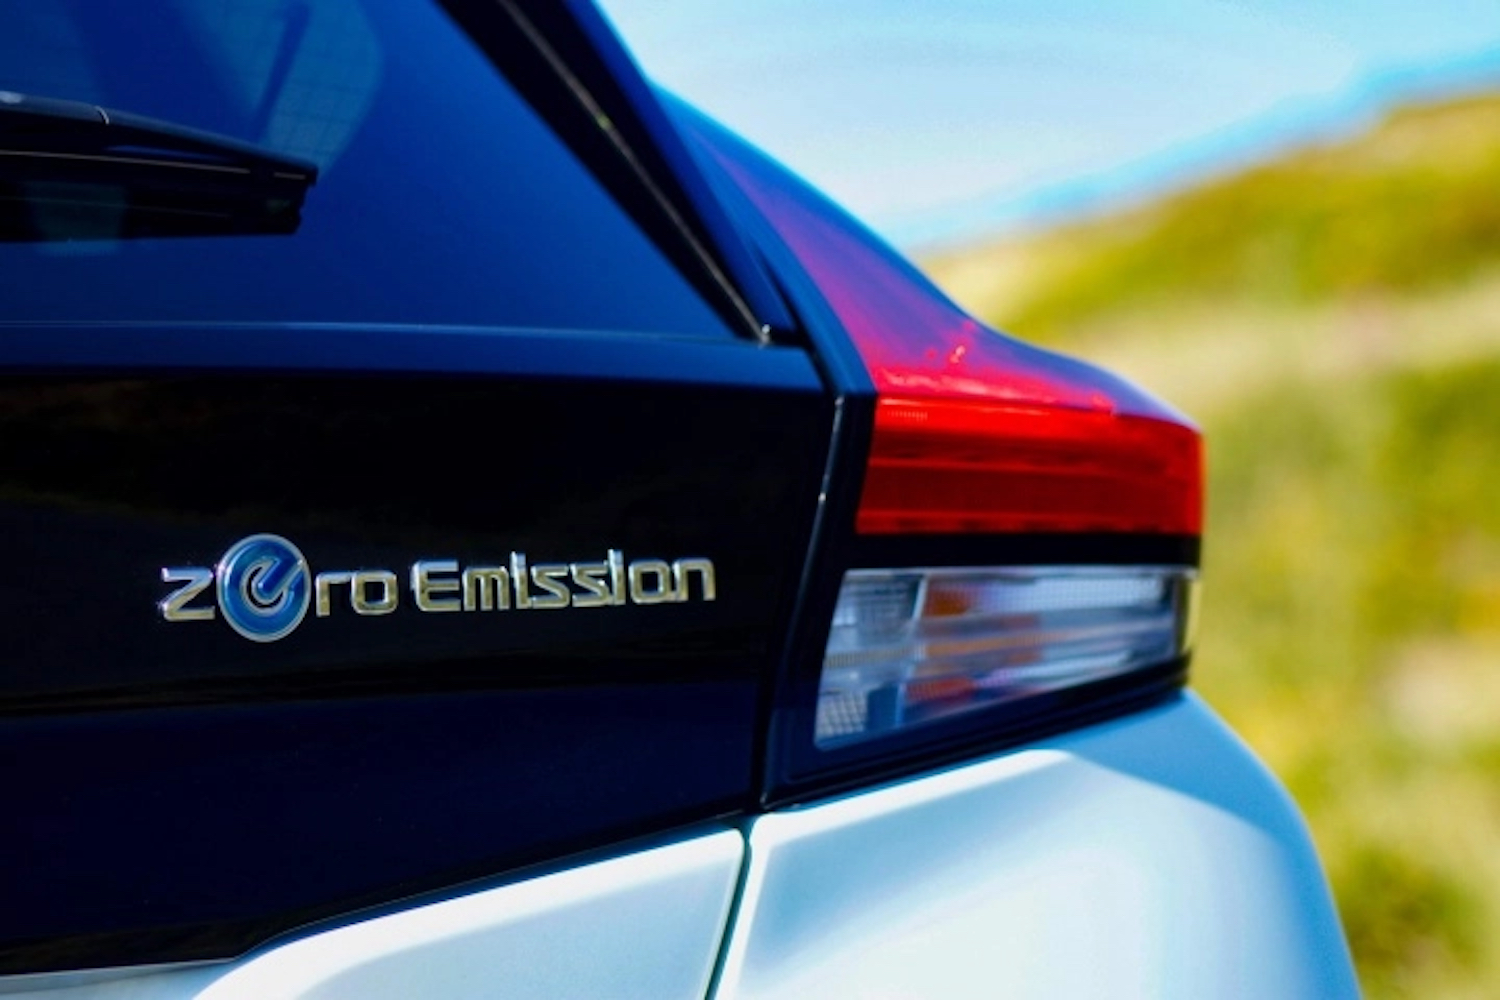 Car News | Carzone reveals best-selling electric cars in Ireland | CompleteCar.ie